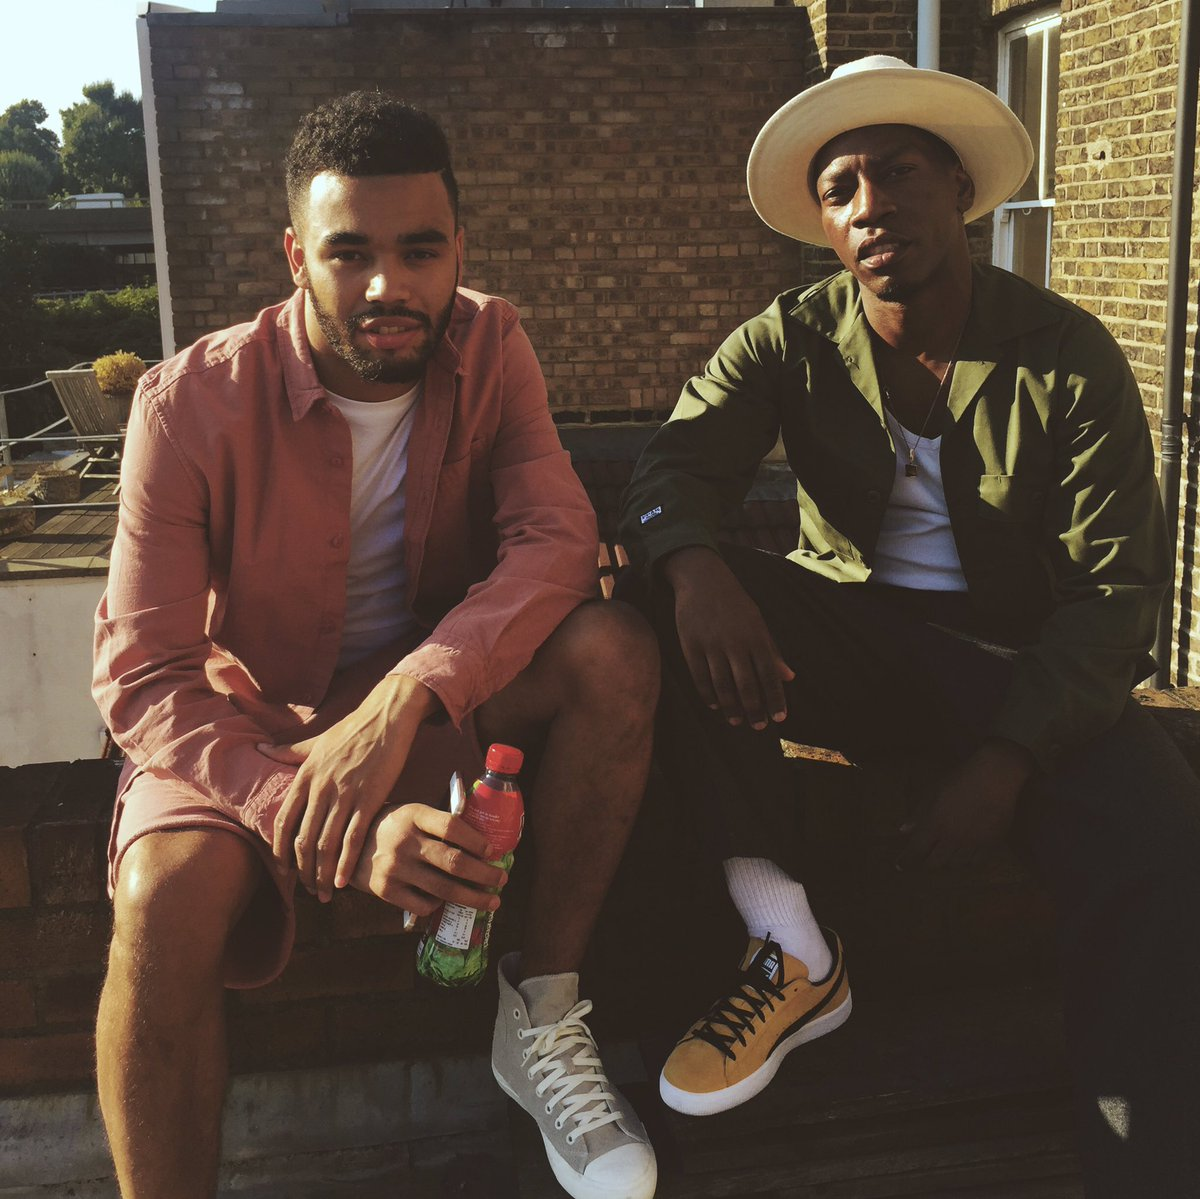 Shooting a new music video for my song 'Swear down' ft my bro @YungenPlayDirty